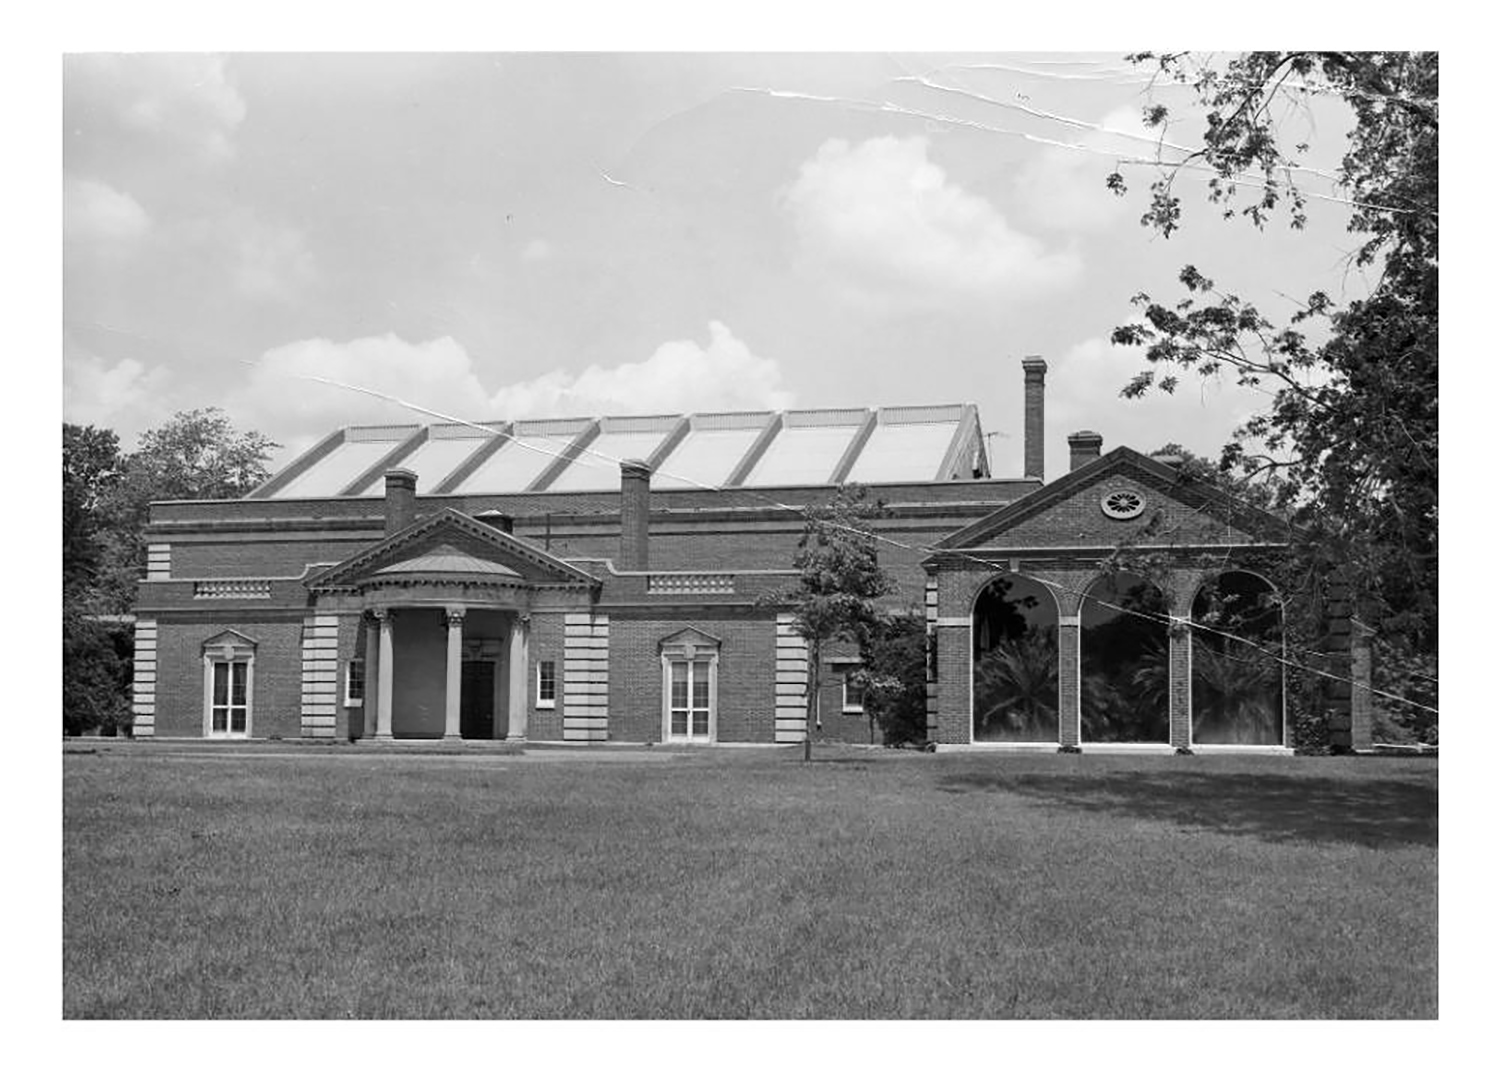 Ruth Twombly's Playhouse build in 1920s on the Florham Estate